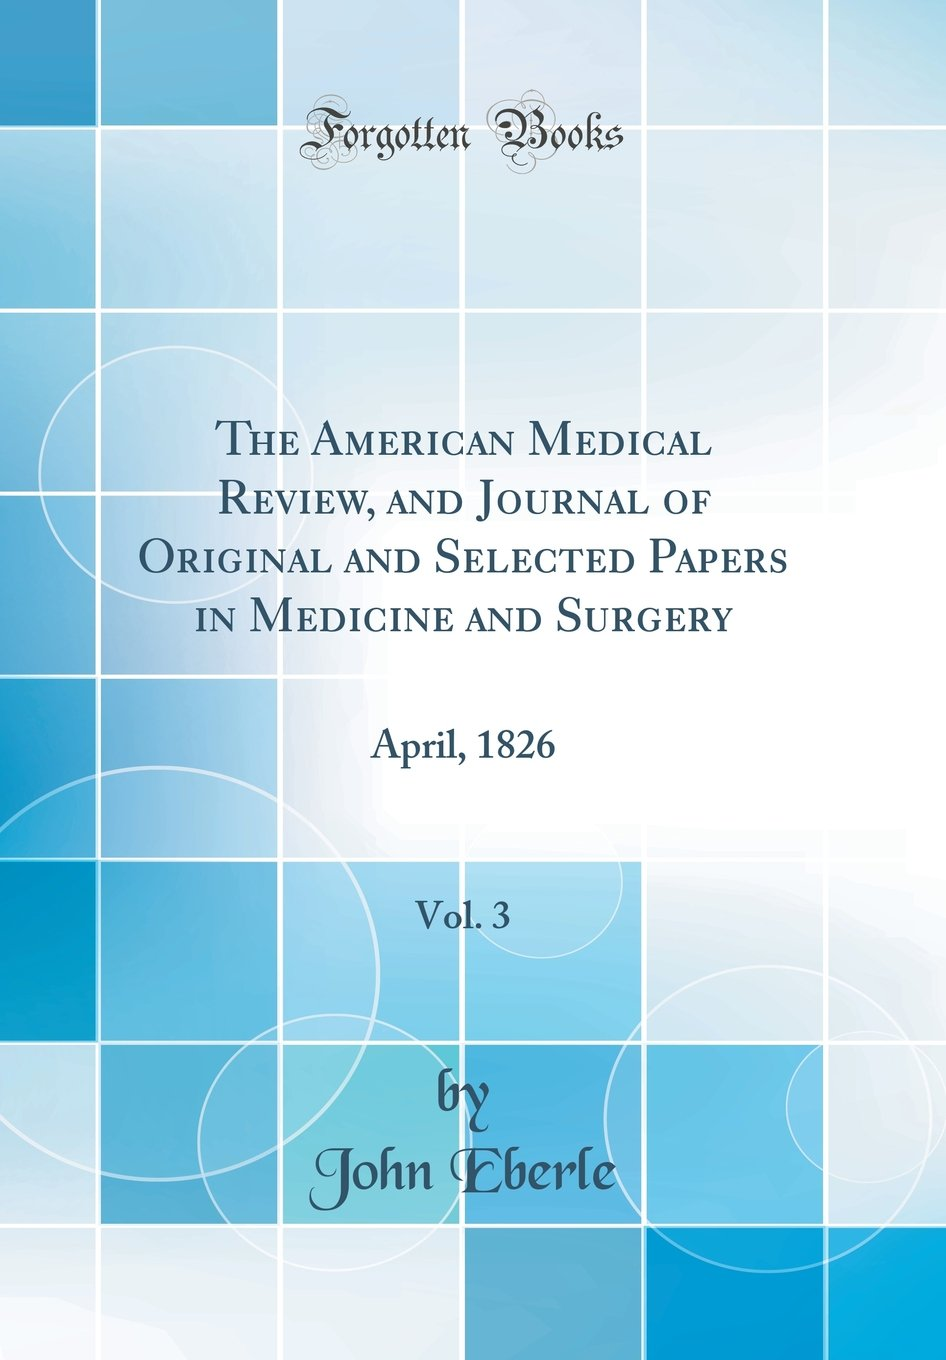 The American Medical Review, and Journal of Original and Selected Papers in Medicine and Surgery, Vol. 3: April, 1826 (Classic Reprint) pdf epub